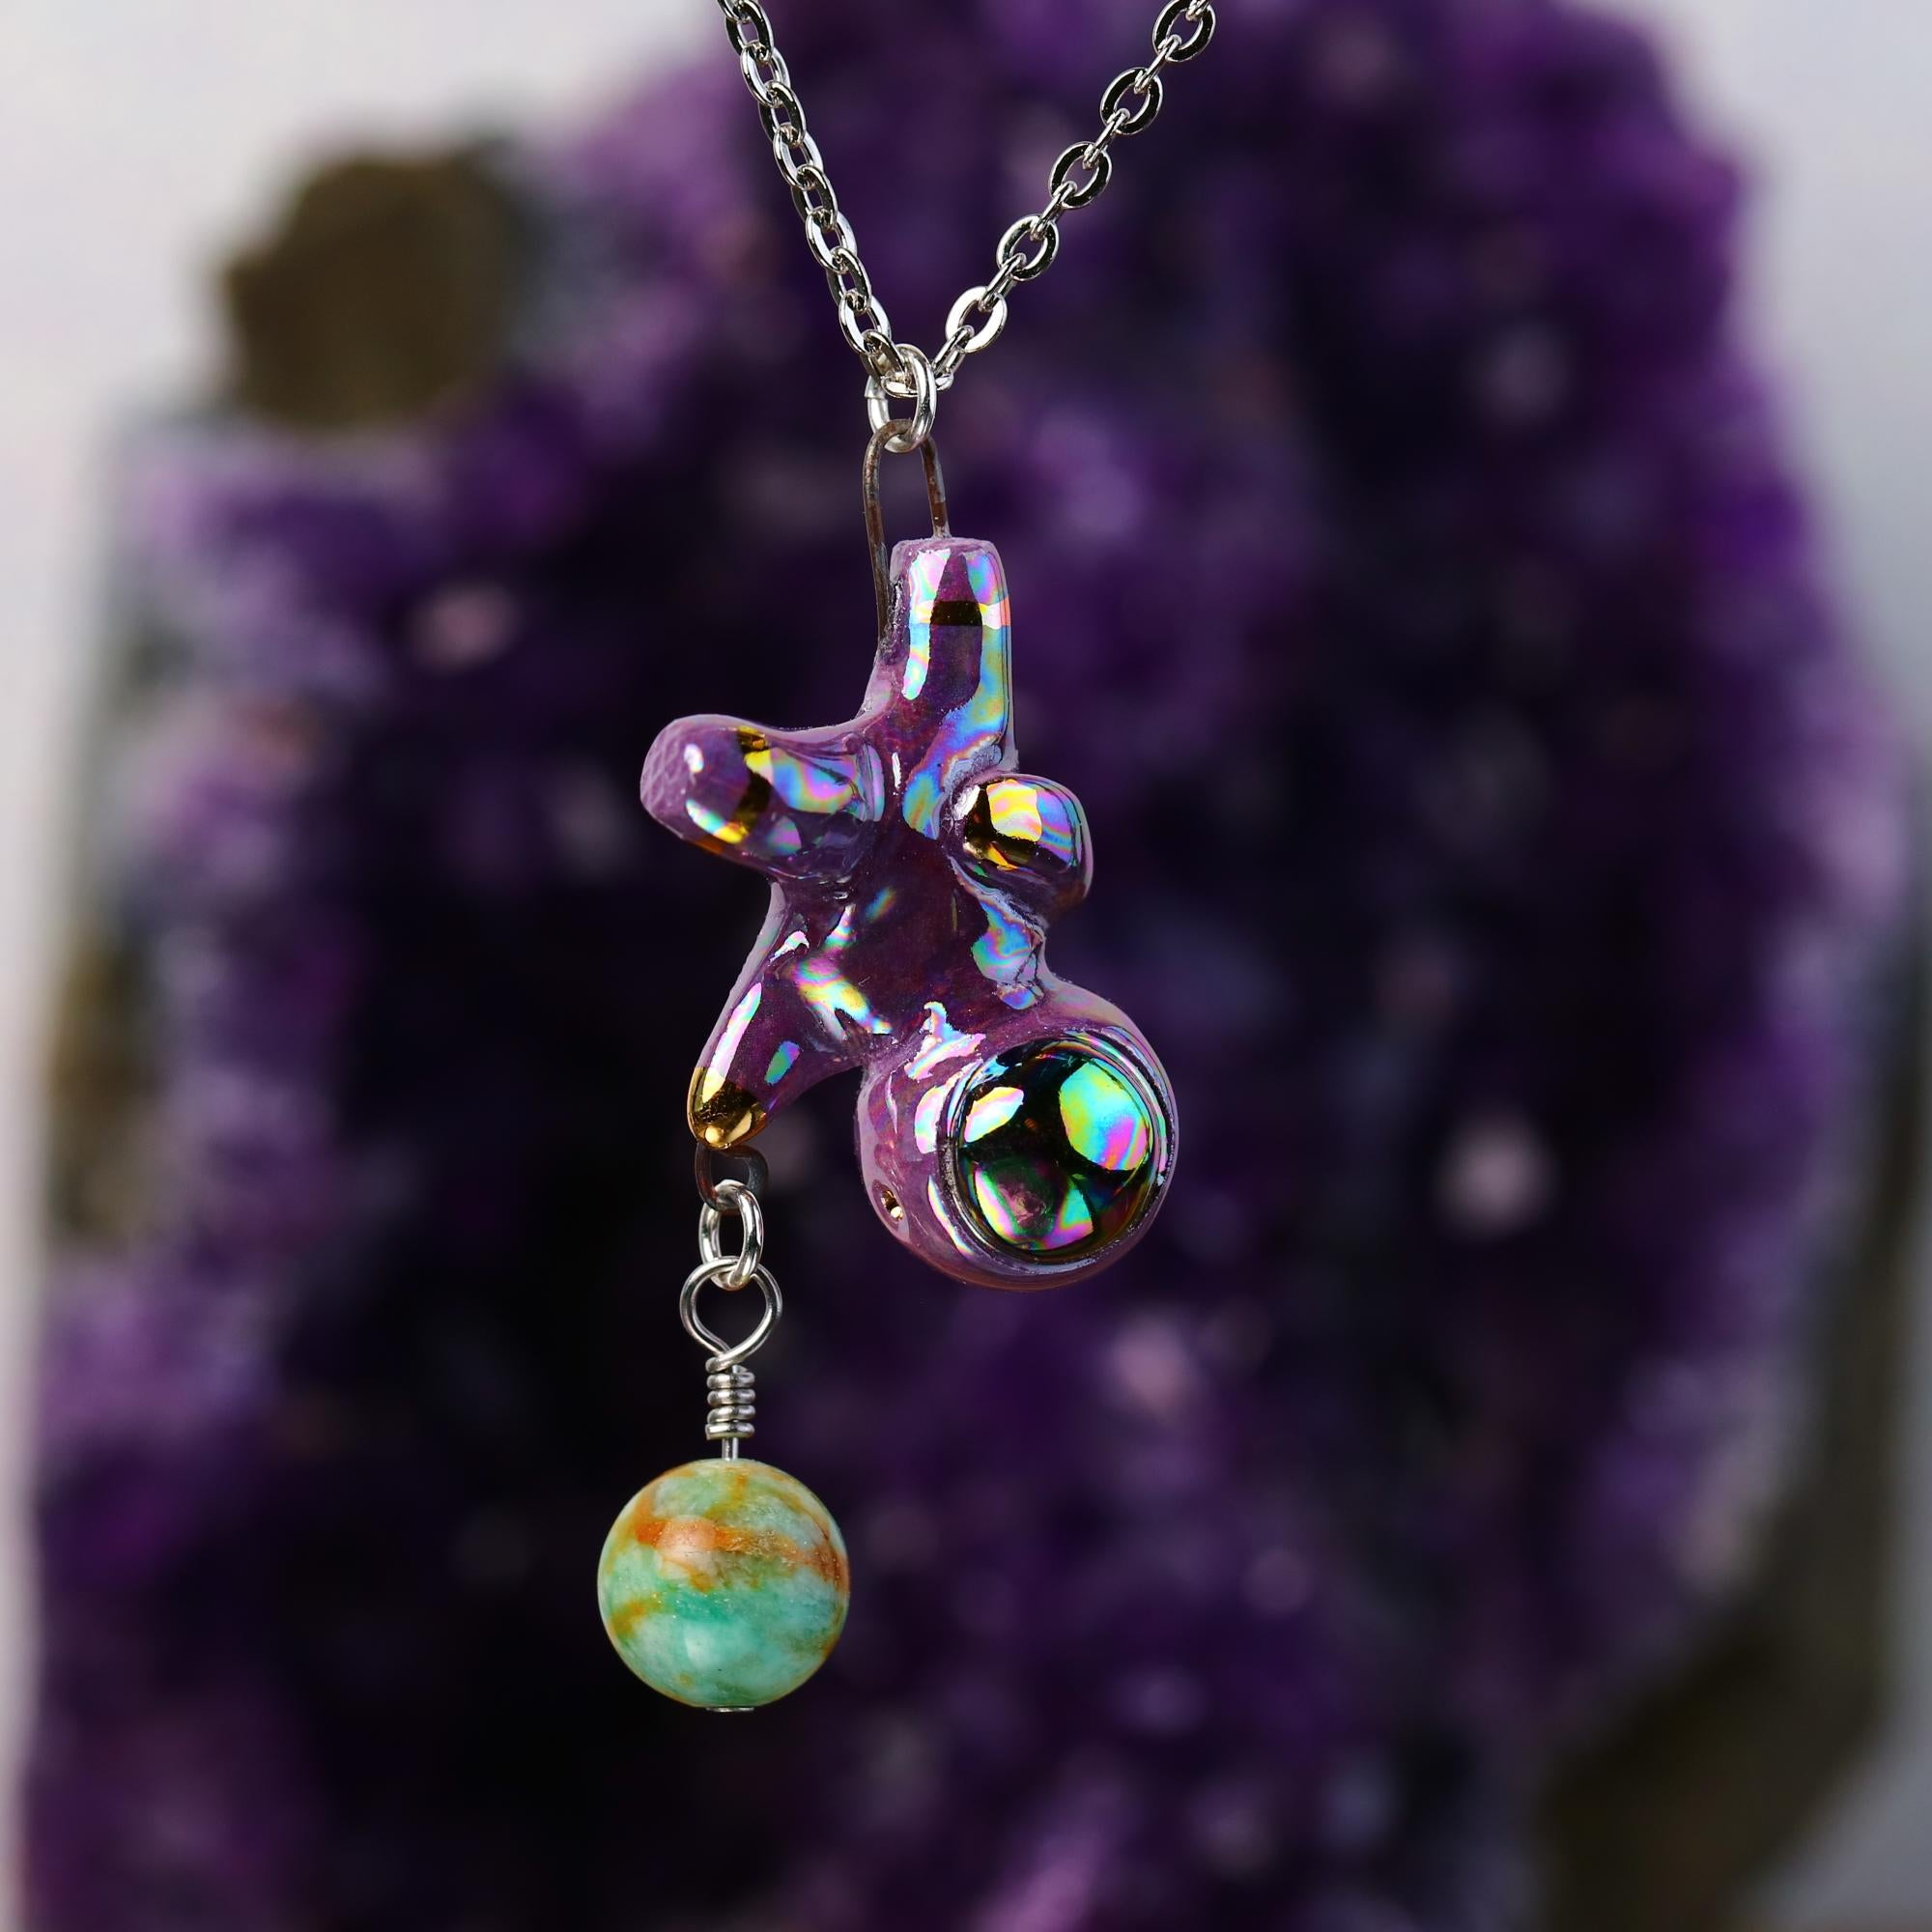 Rainbow Floating Charm Astronaut Necklace